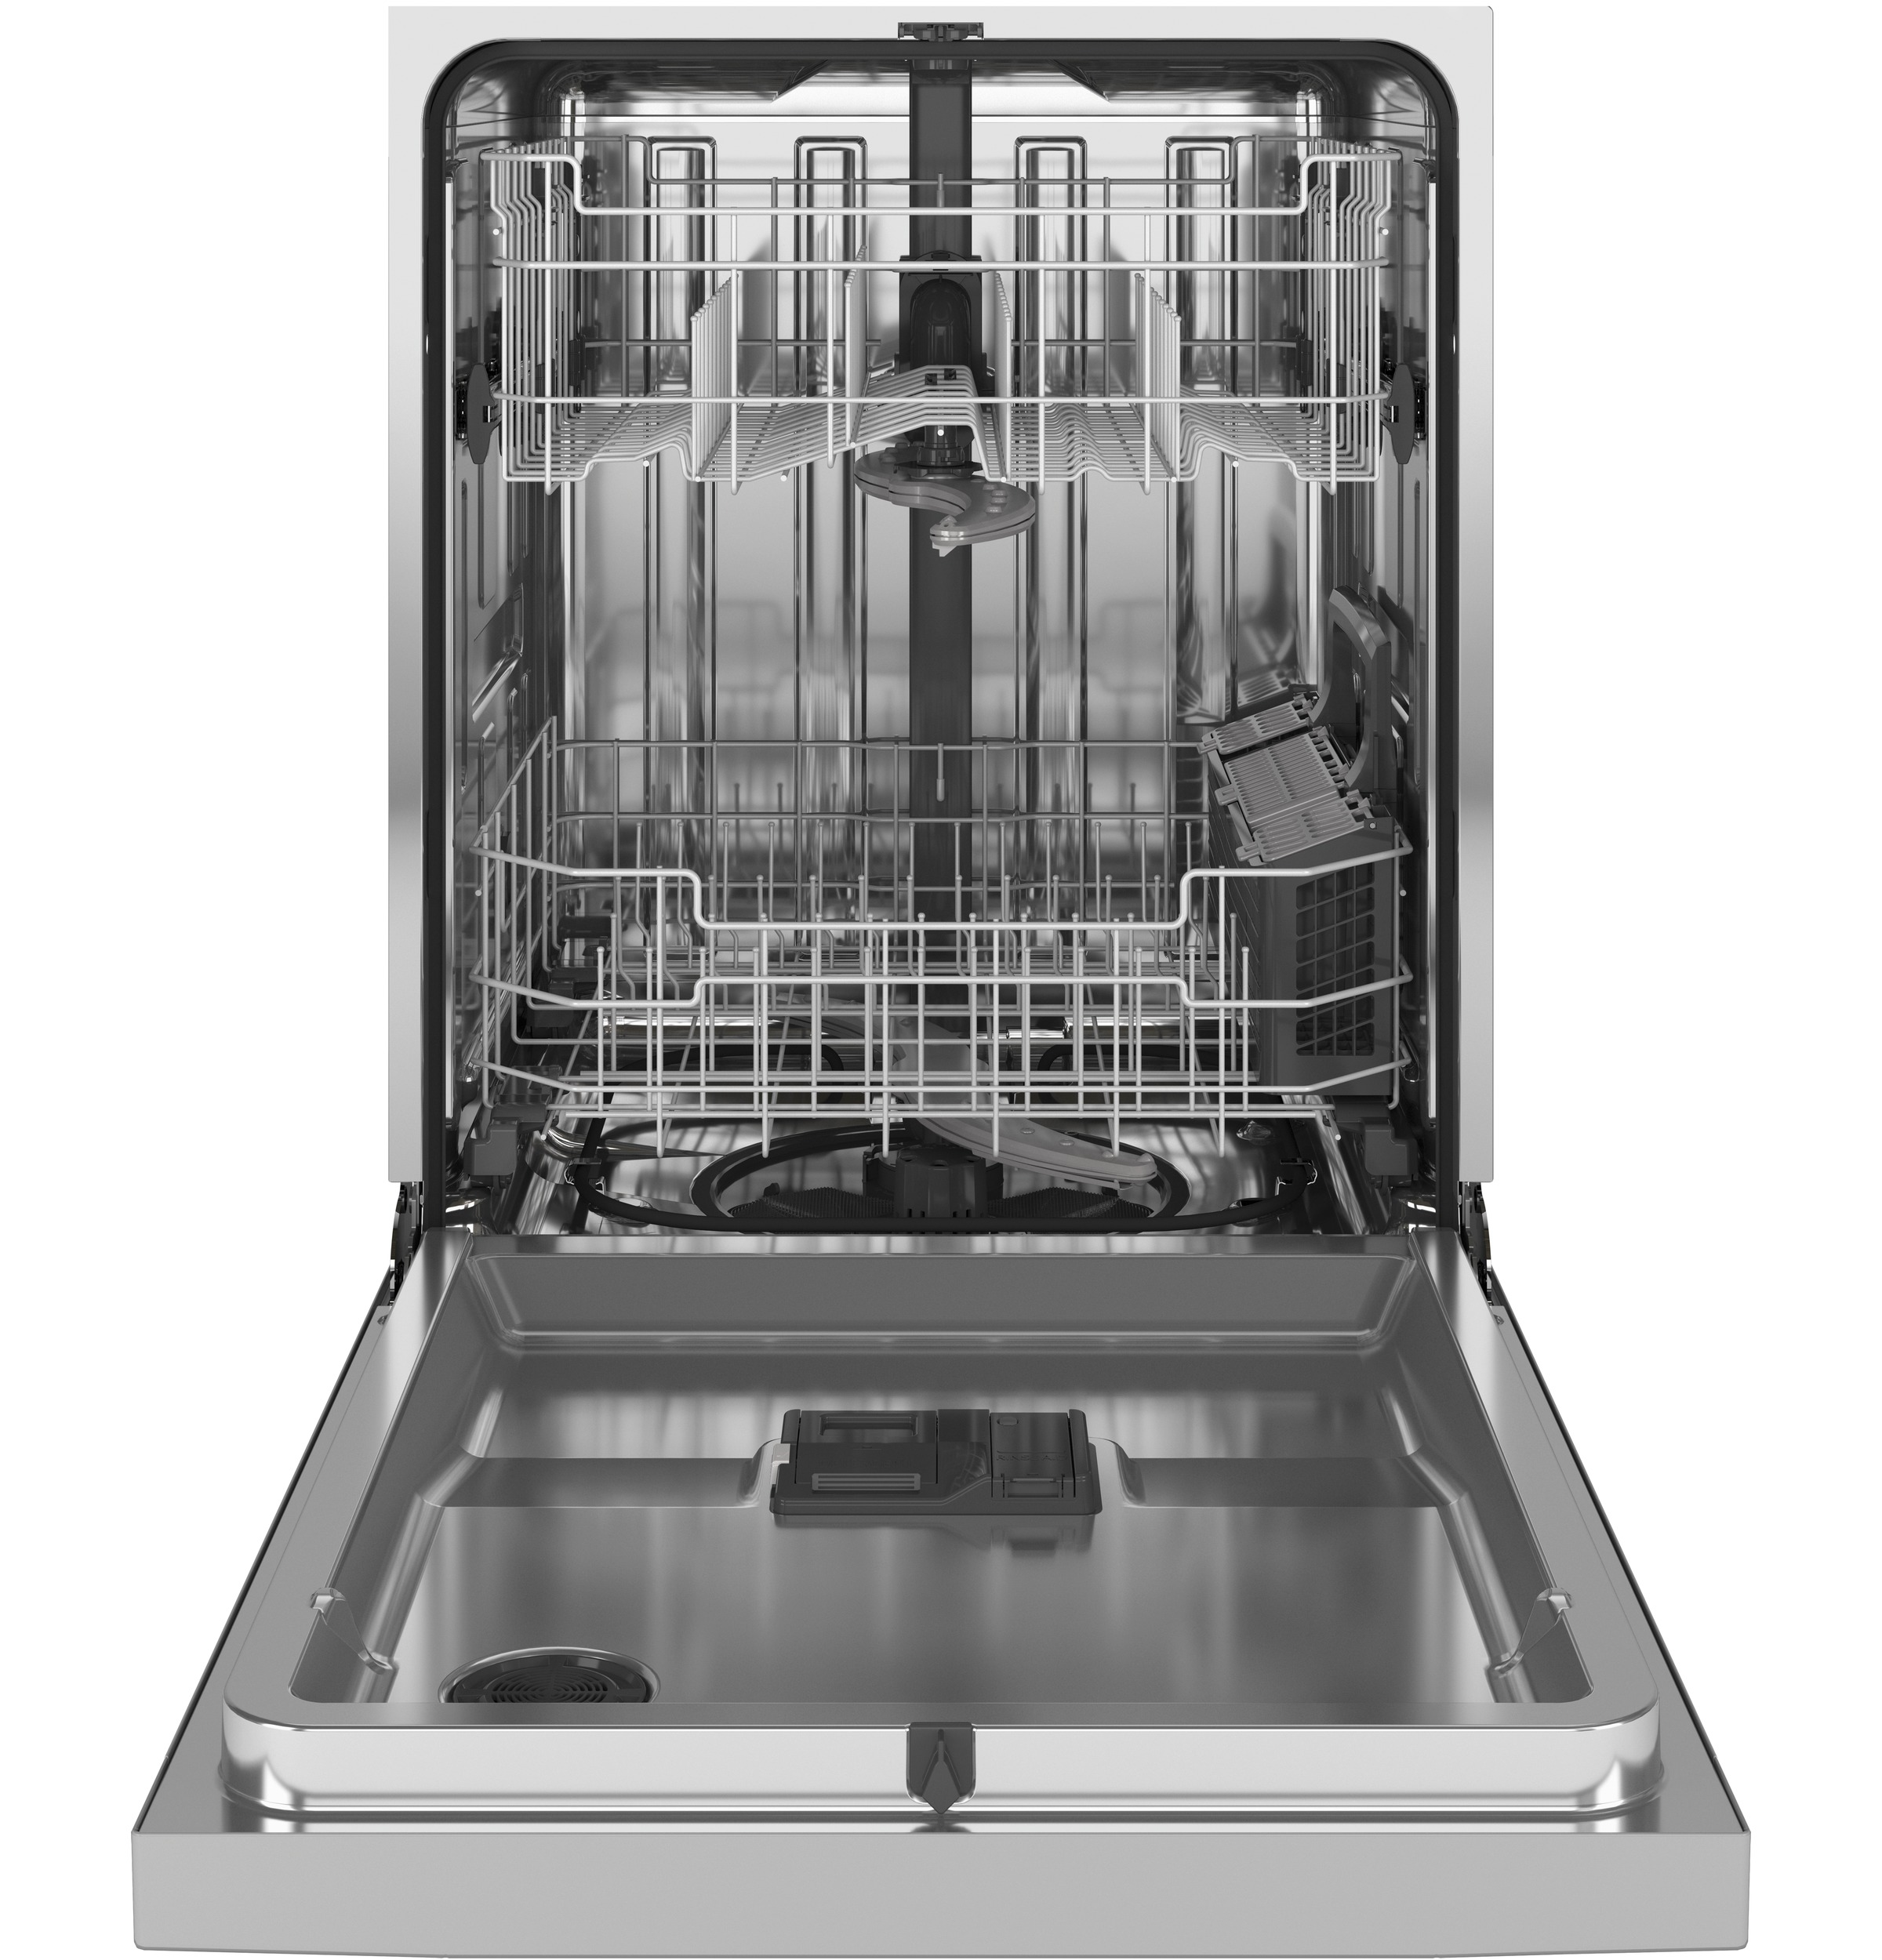 Model: GDF565SSNSS | GE GE® Front Control with Stainless Steel Interior Dishwasher with Sanitize Cycle & Dry Boost